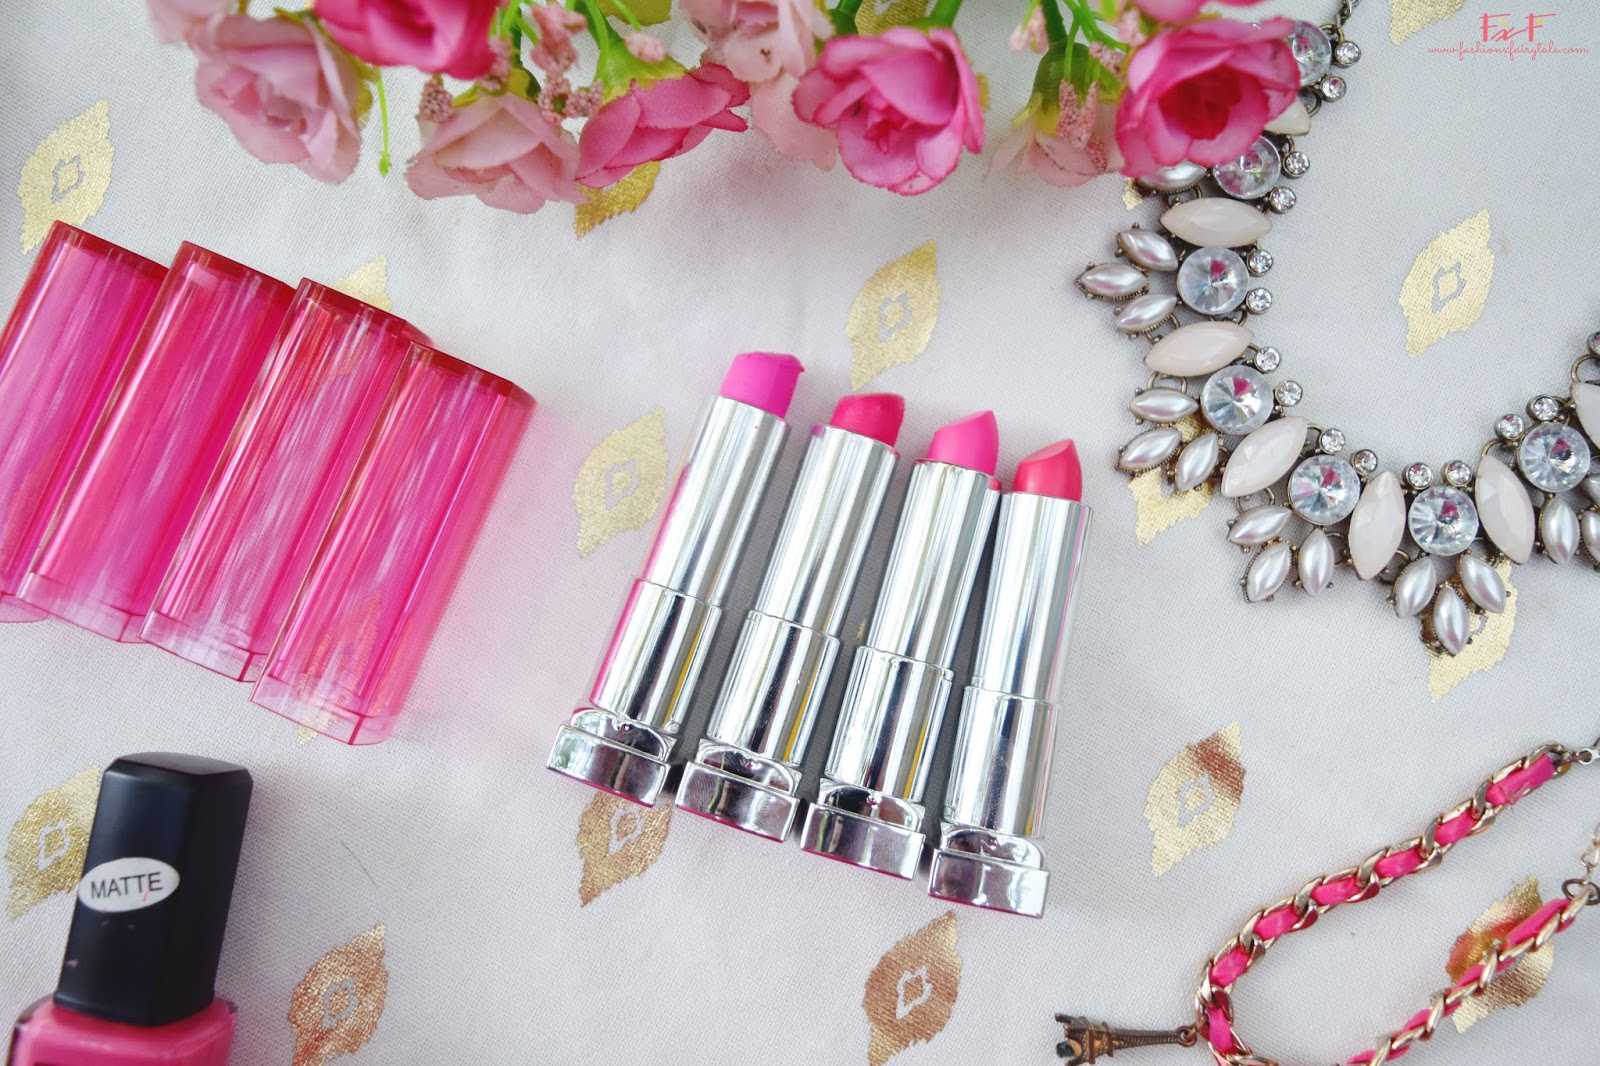 Maybelline Color Sensational Pink Alert Lipsticks